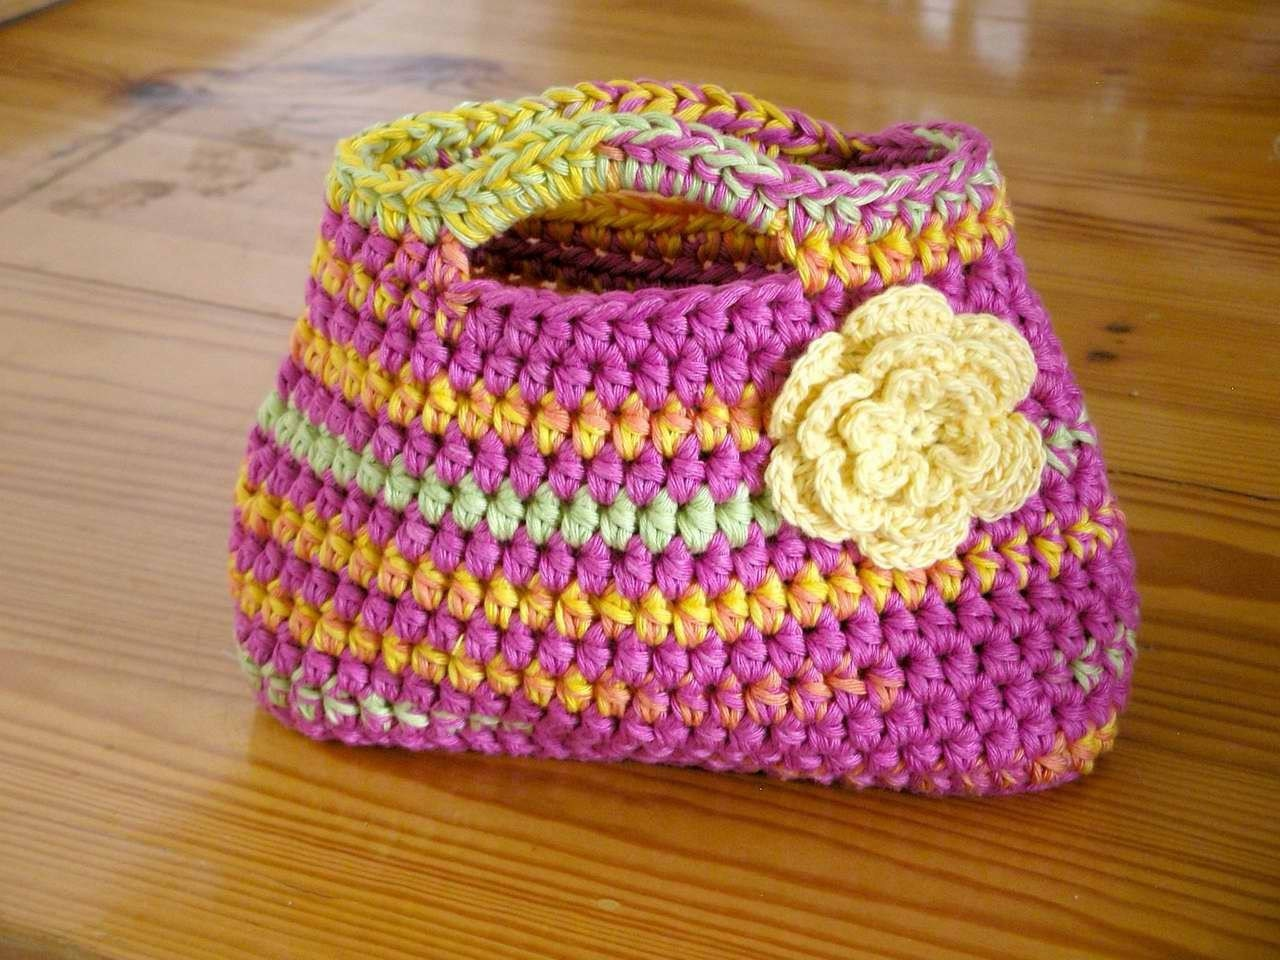 Handbag crochet pattern easy peasy little kids bag crochet zoom bankloansurffo Choice Image